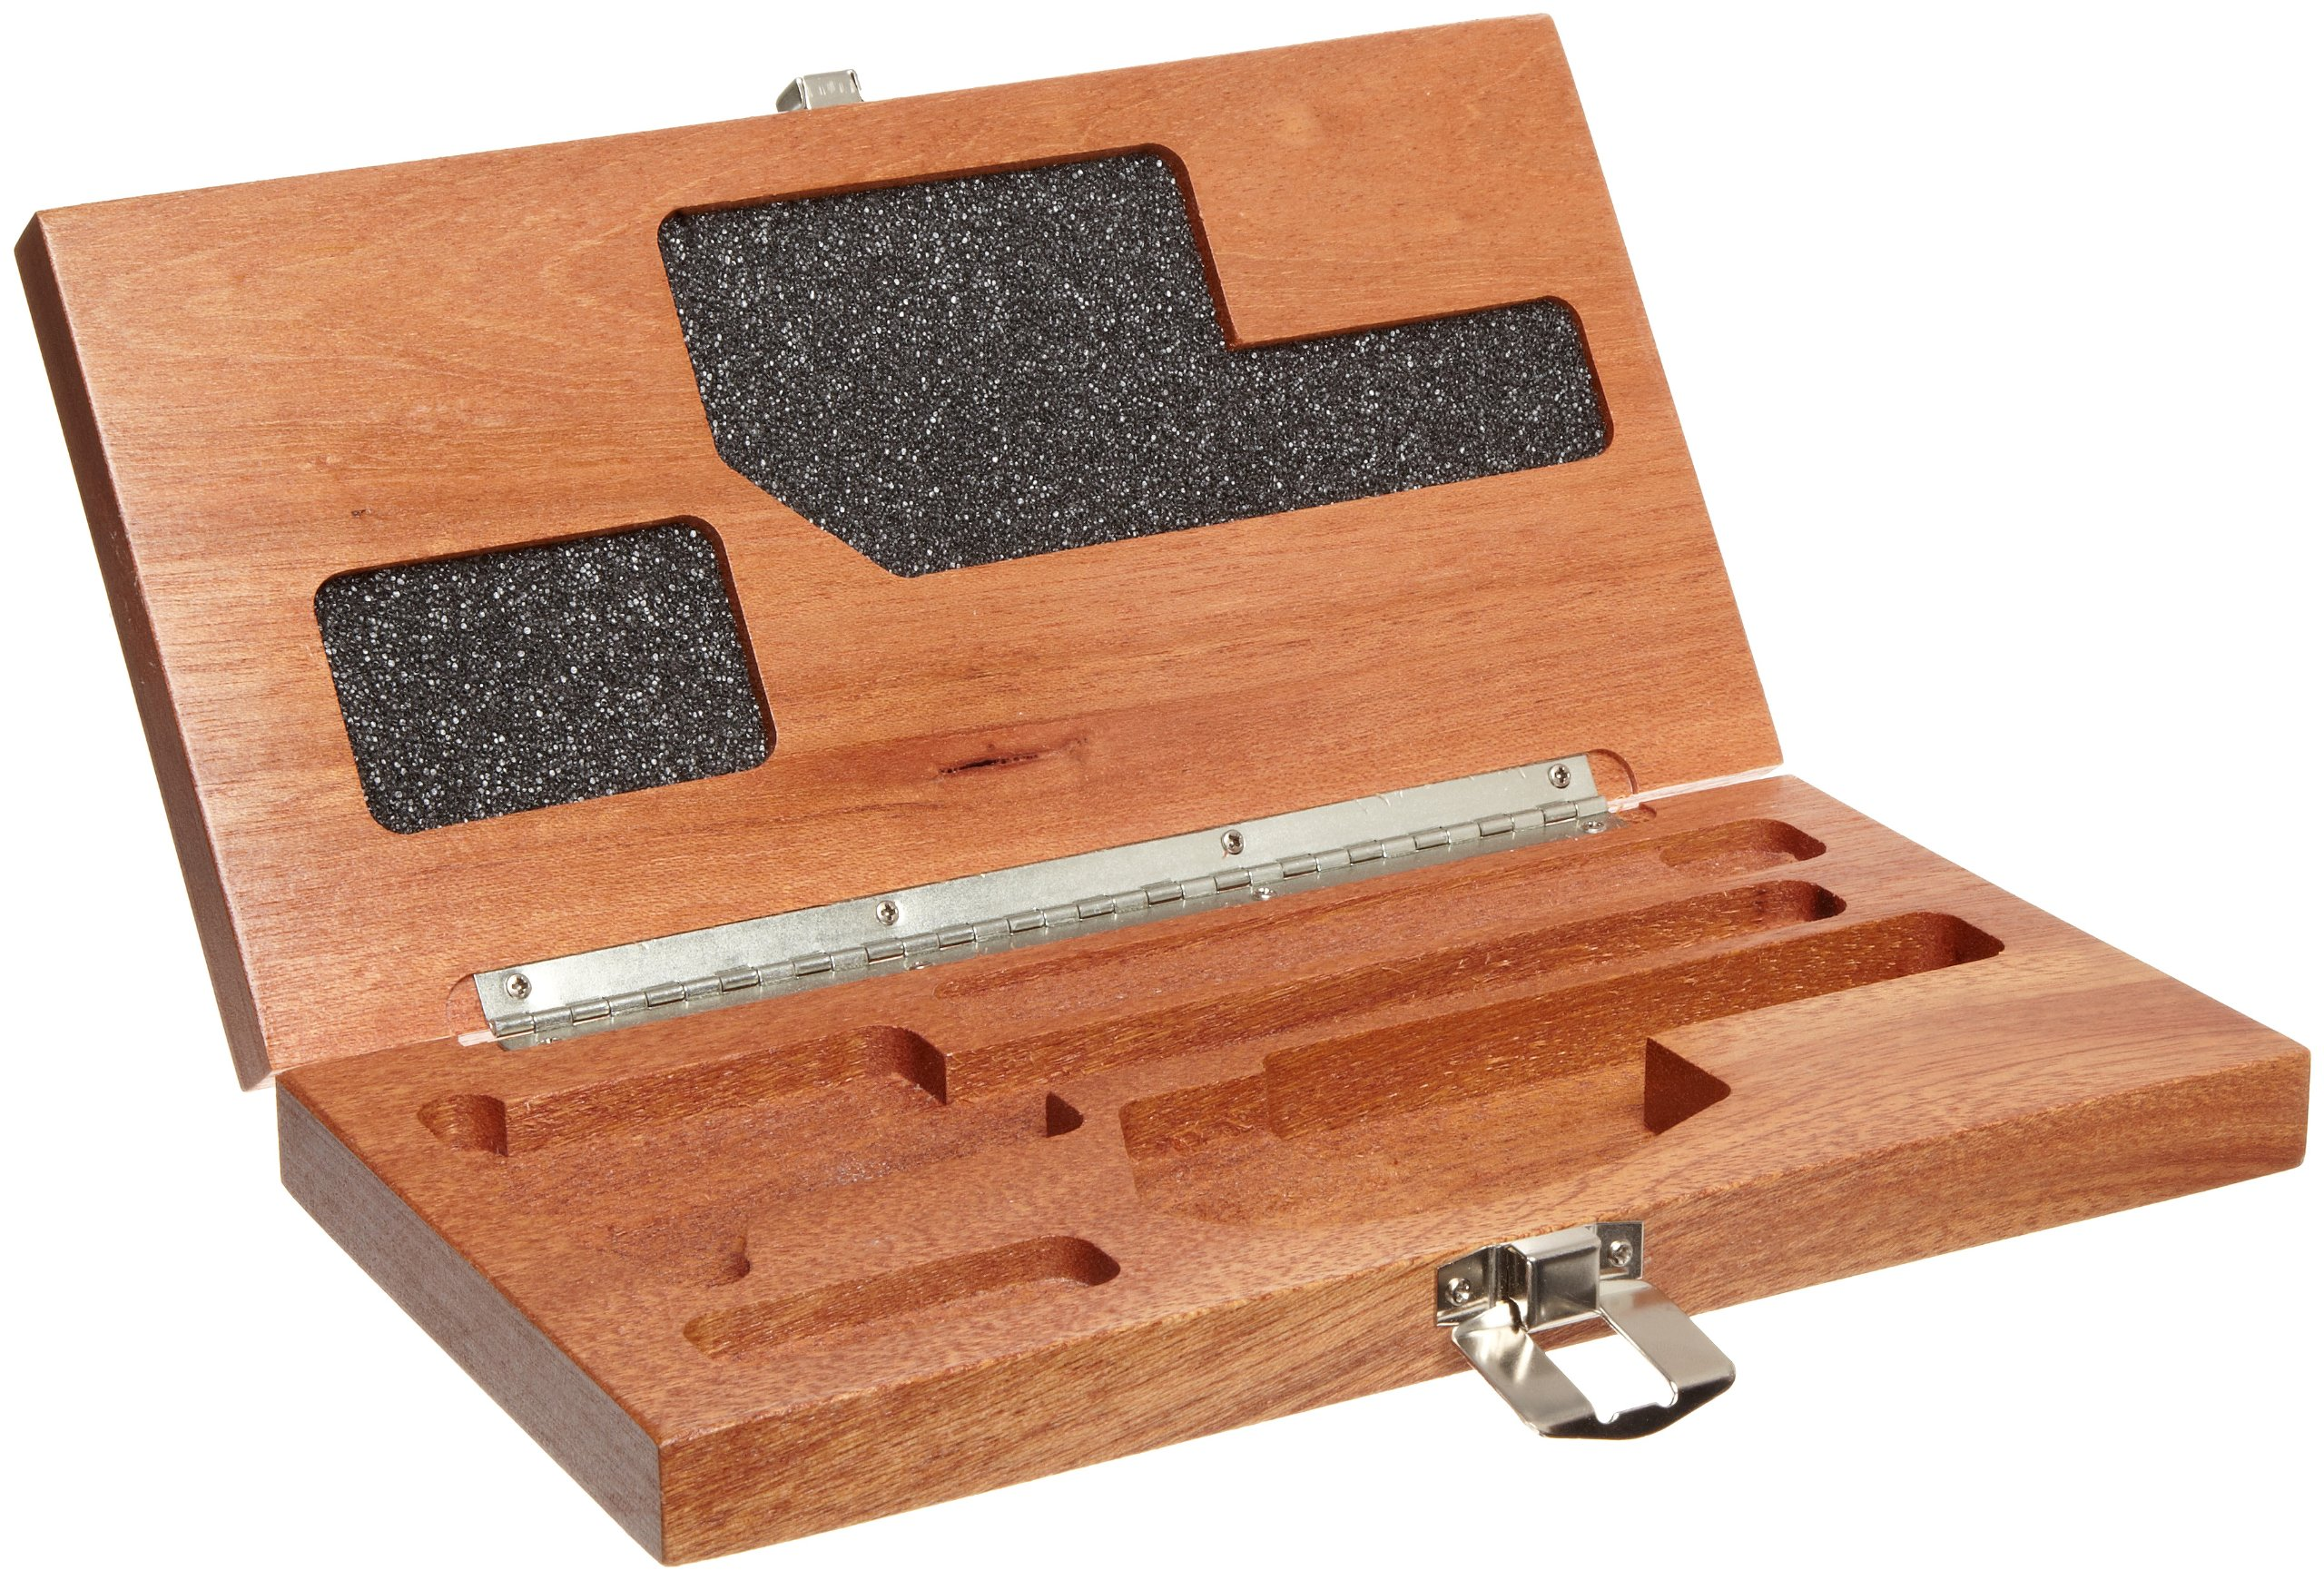 Mitutoyo 64PPP932 Mahogany Case for Digimatic Caliper and Micrometer Sets by Mitutoyo (Image #1)